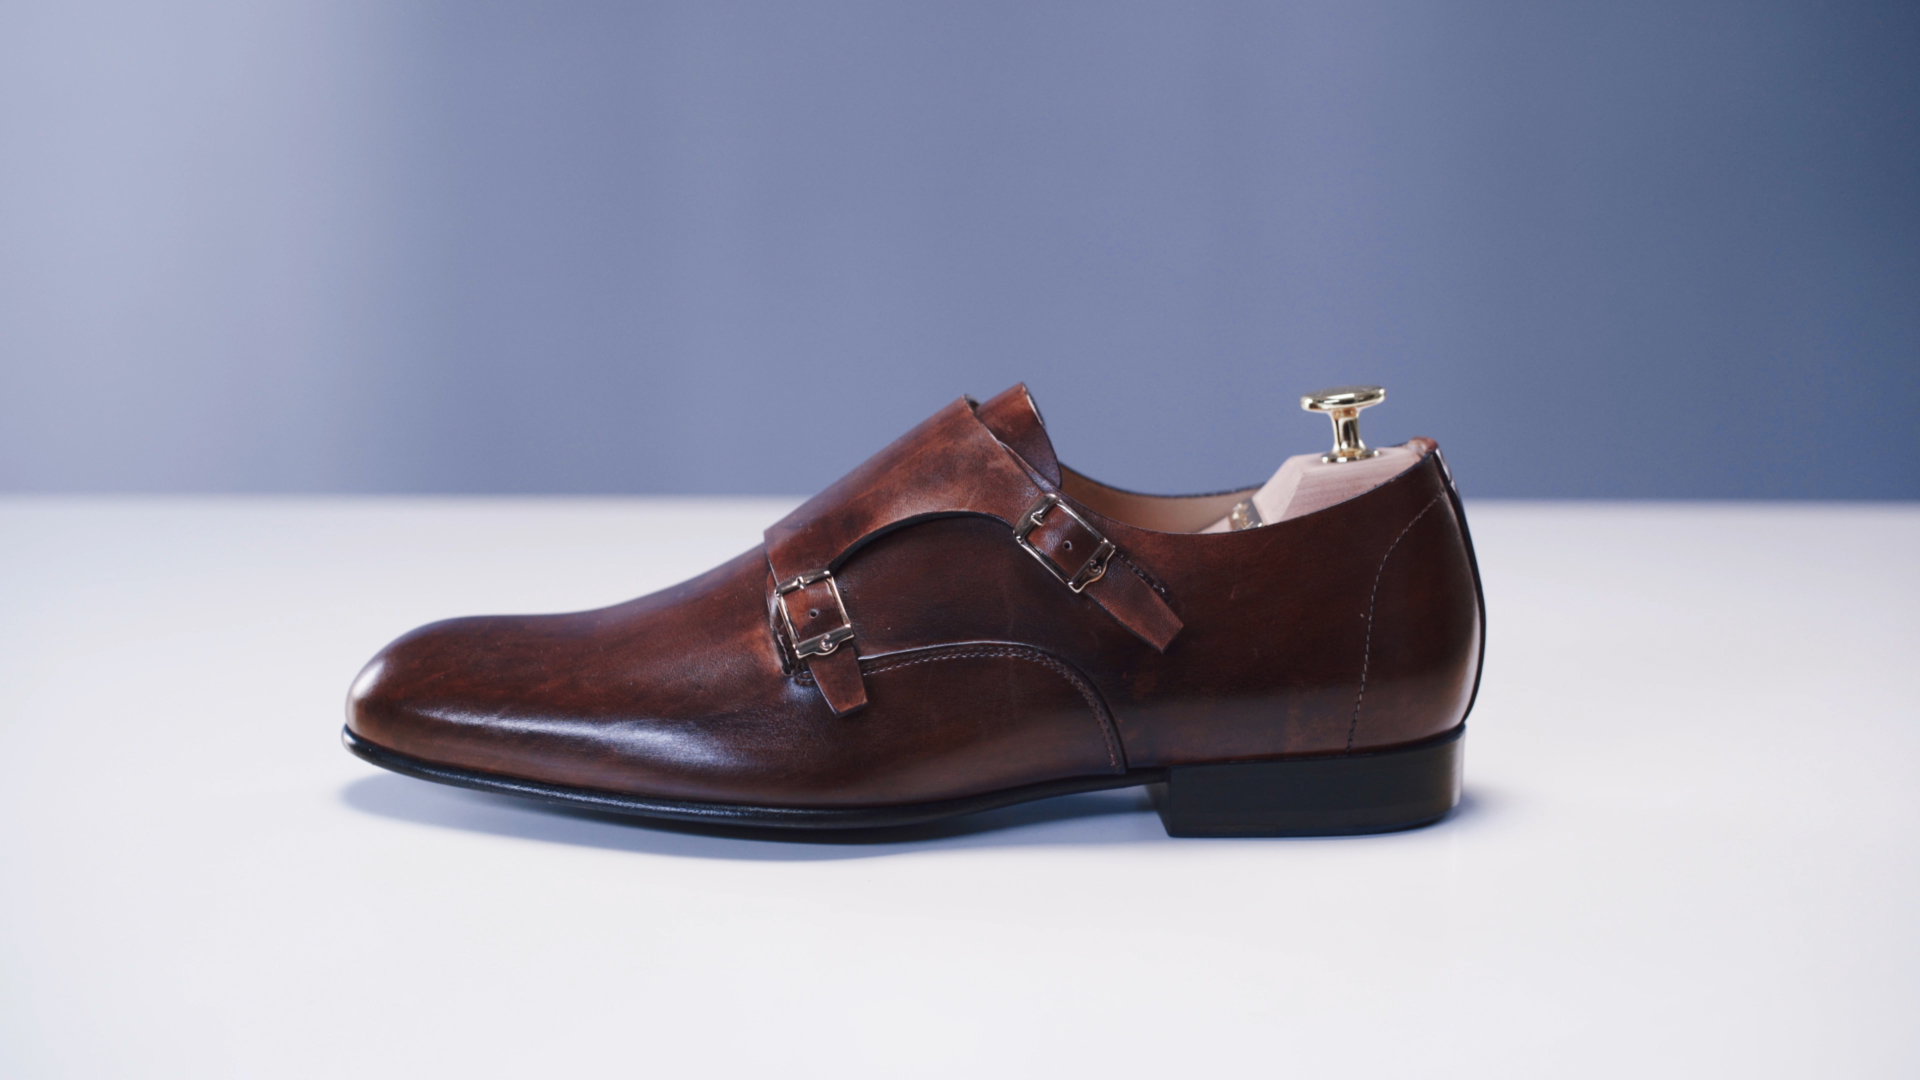 Conhpol - made by hand of 100% leather 4